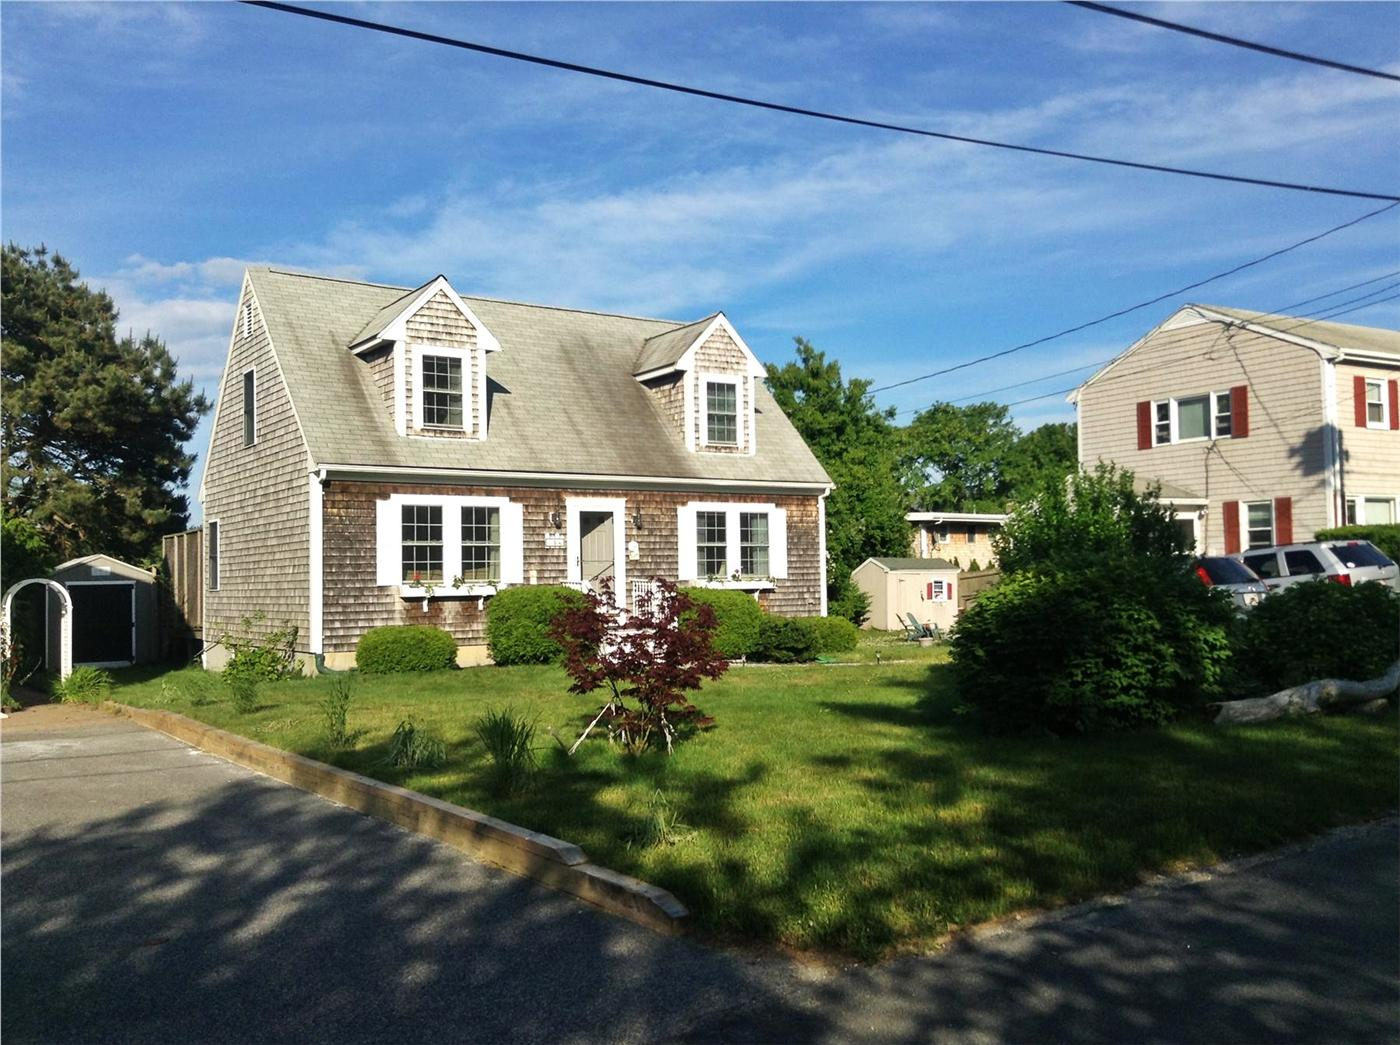 Couch Daybed Sandwich Vacation Rental Home In Cape Cod Ma 02563, 0.25